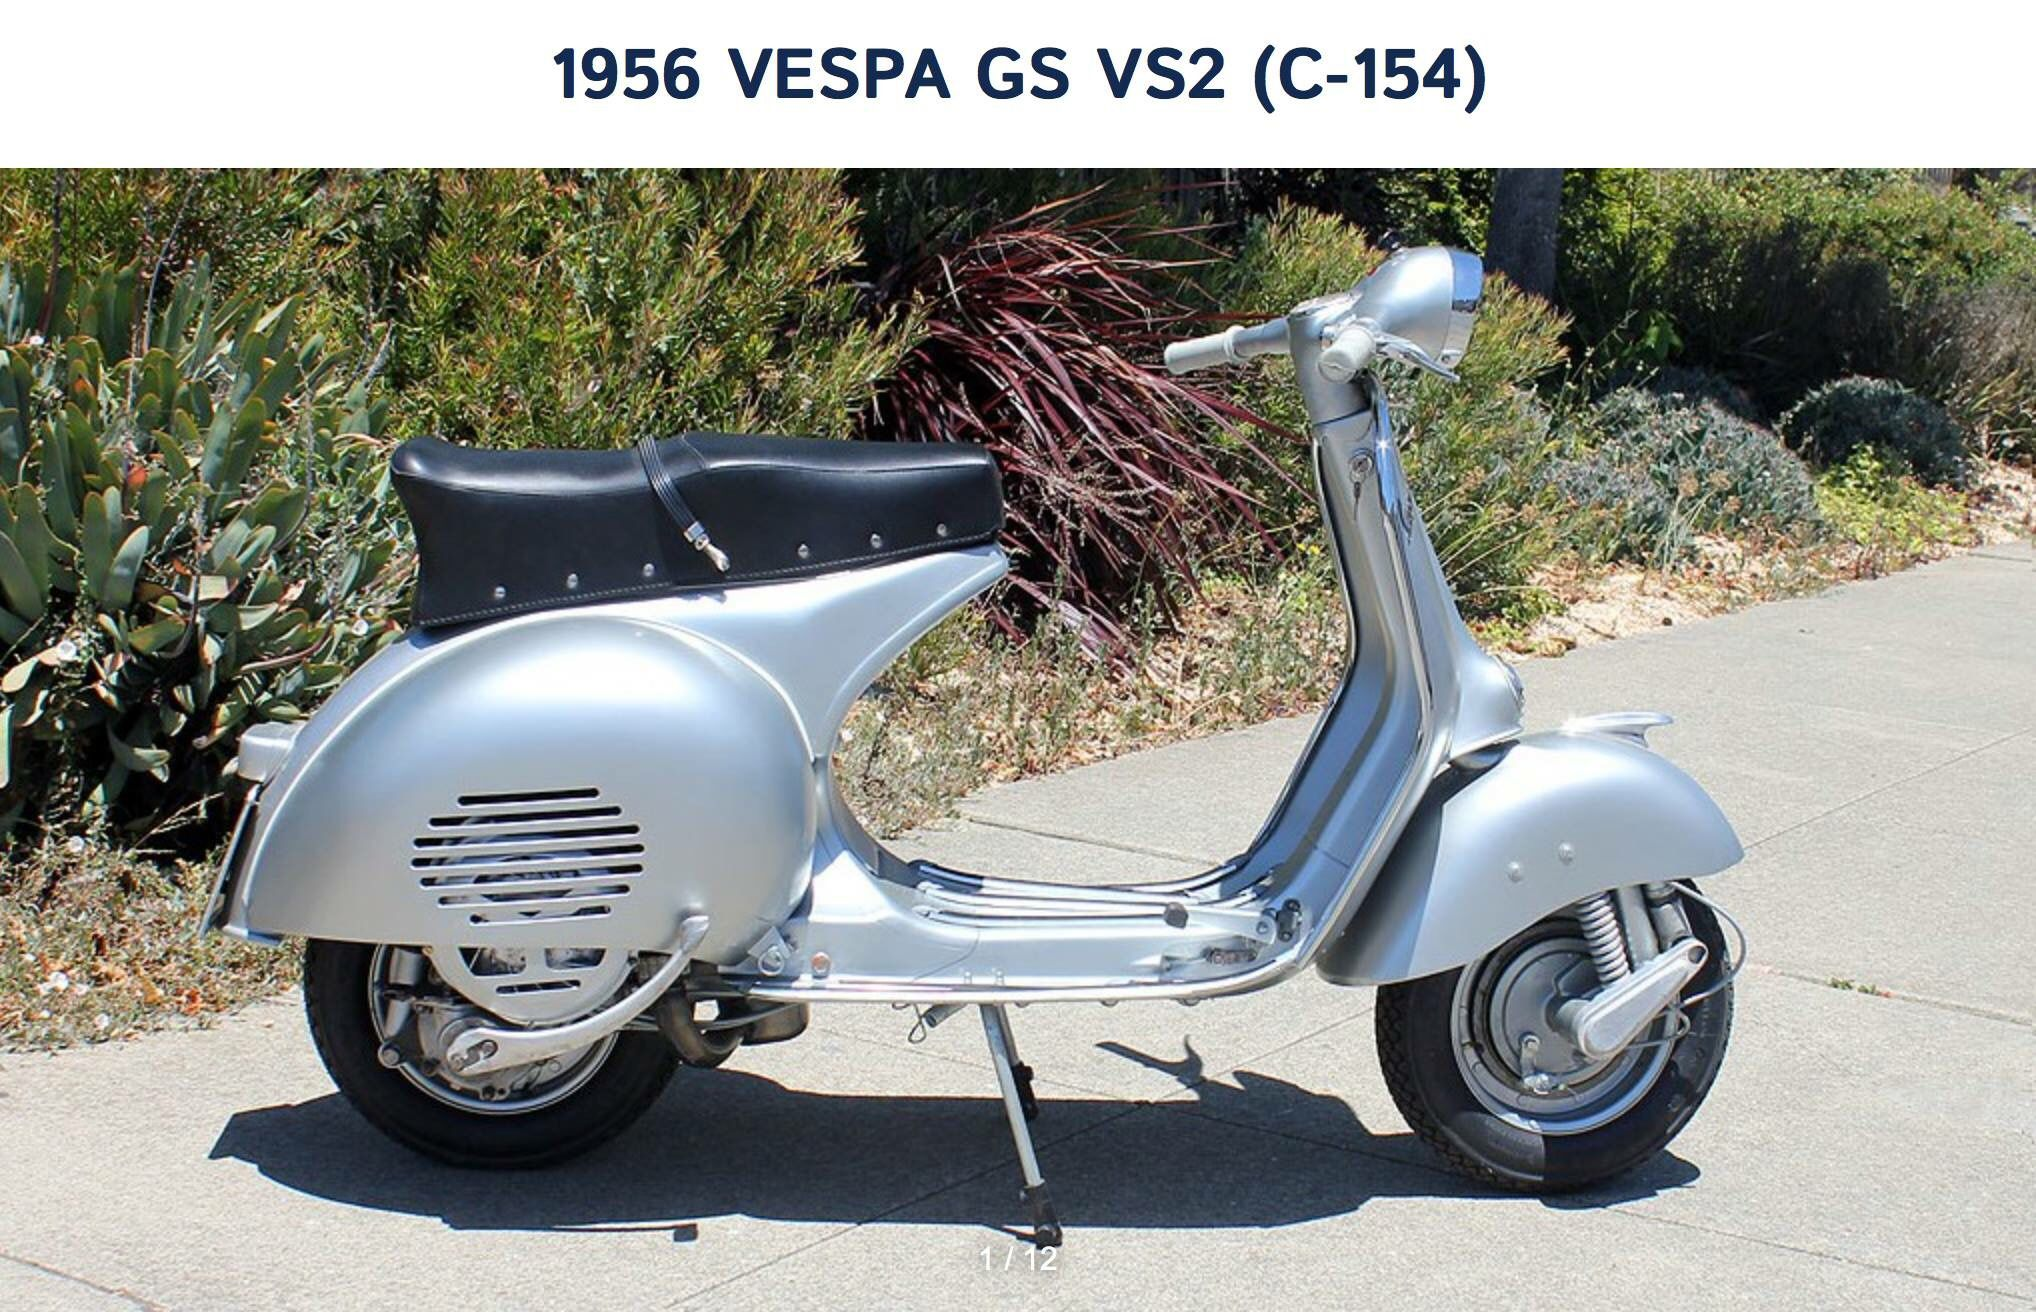 This 1956 Vespa Gs Vs2 Is A Beauty To Behold It Represents The First Of The Yearly Updates To The Gs Line And Incorporated Vi Vespa Vintage Vespa Vespa Moped